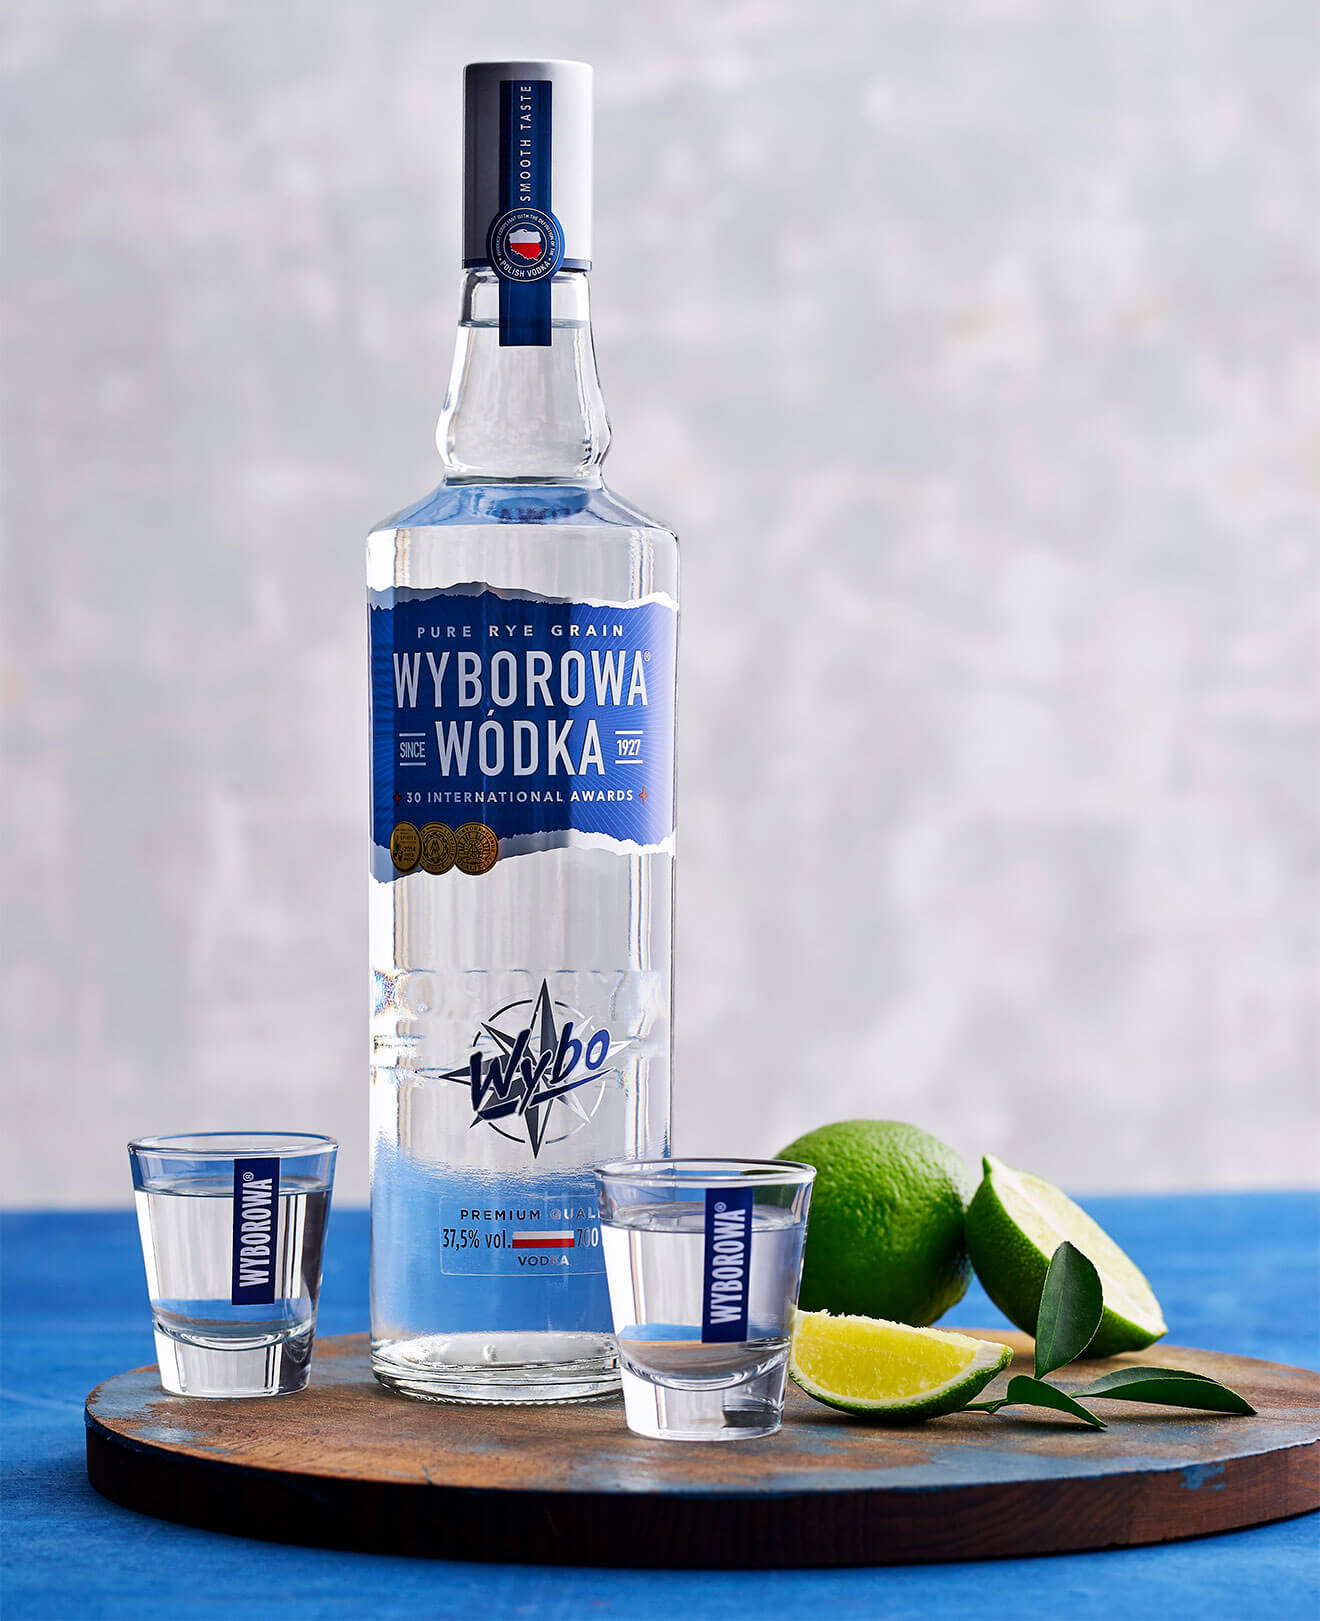 Wyborowa Vodka Shots, bottle and garnishes